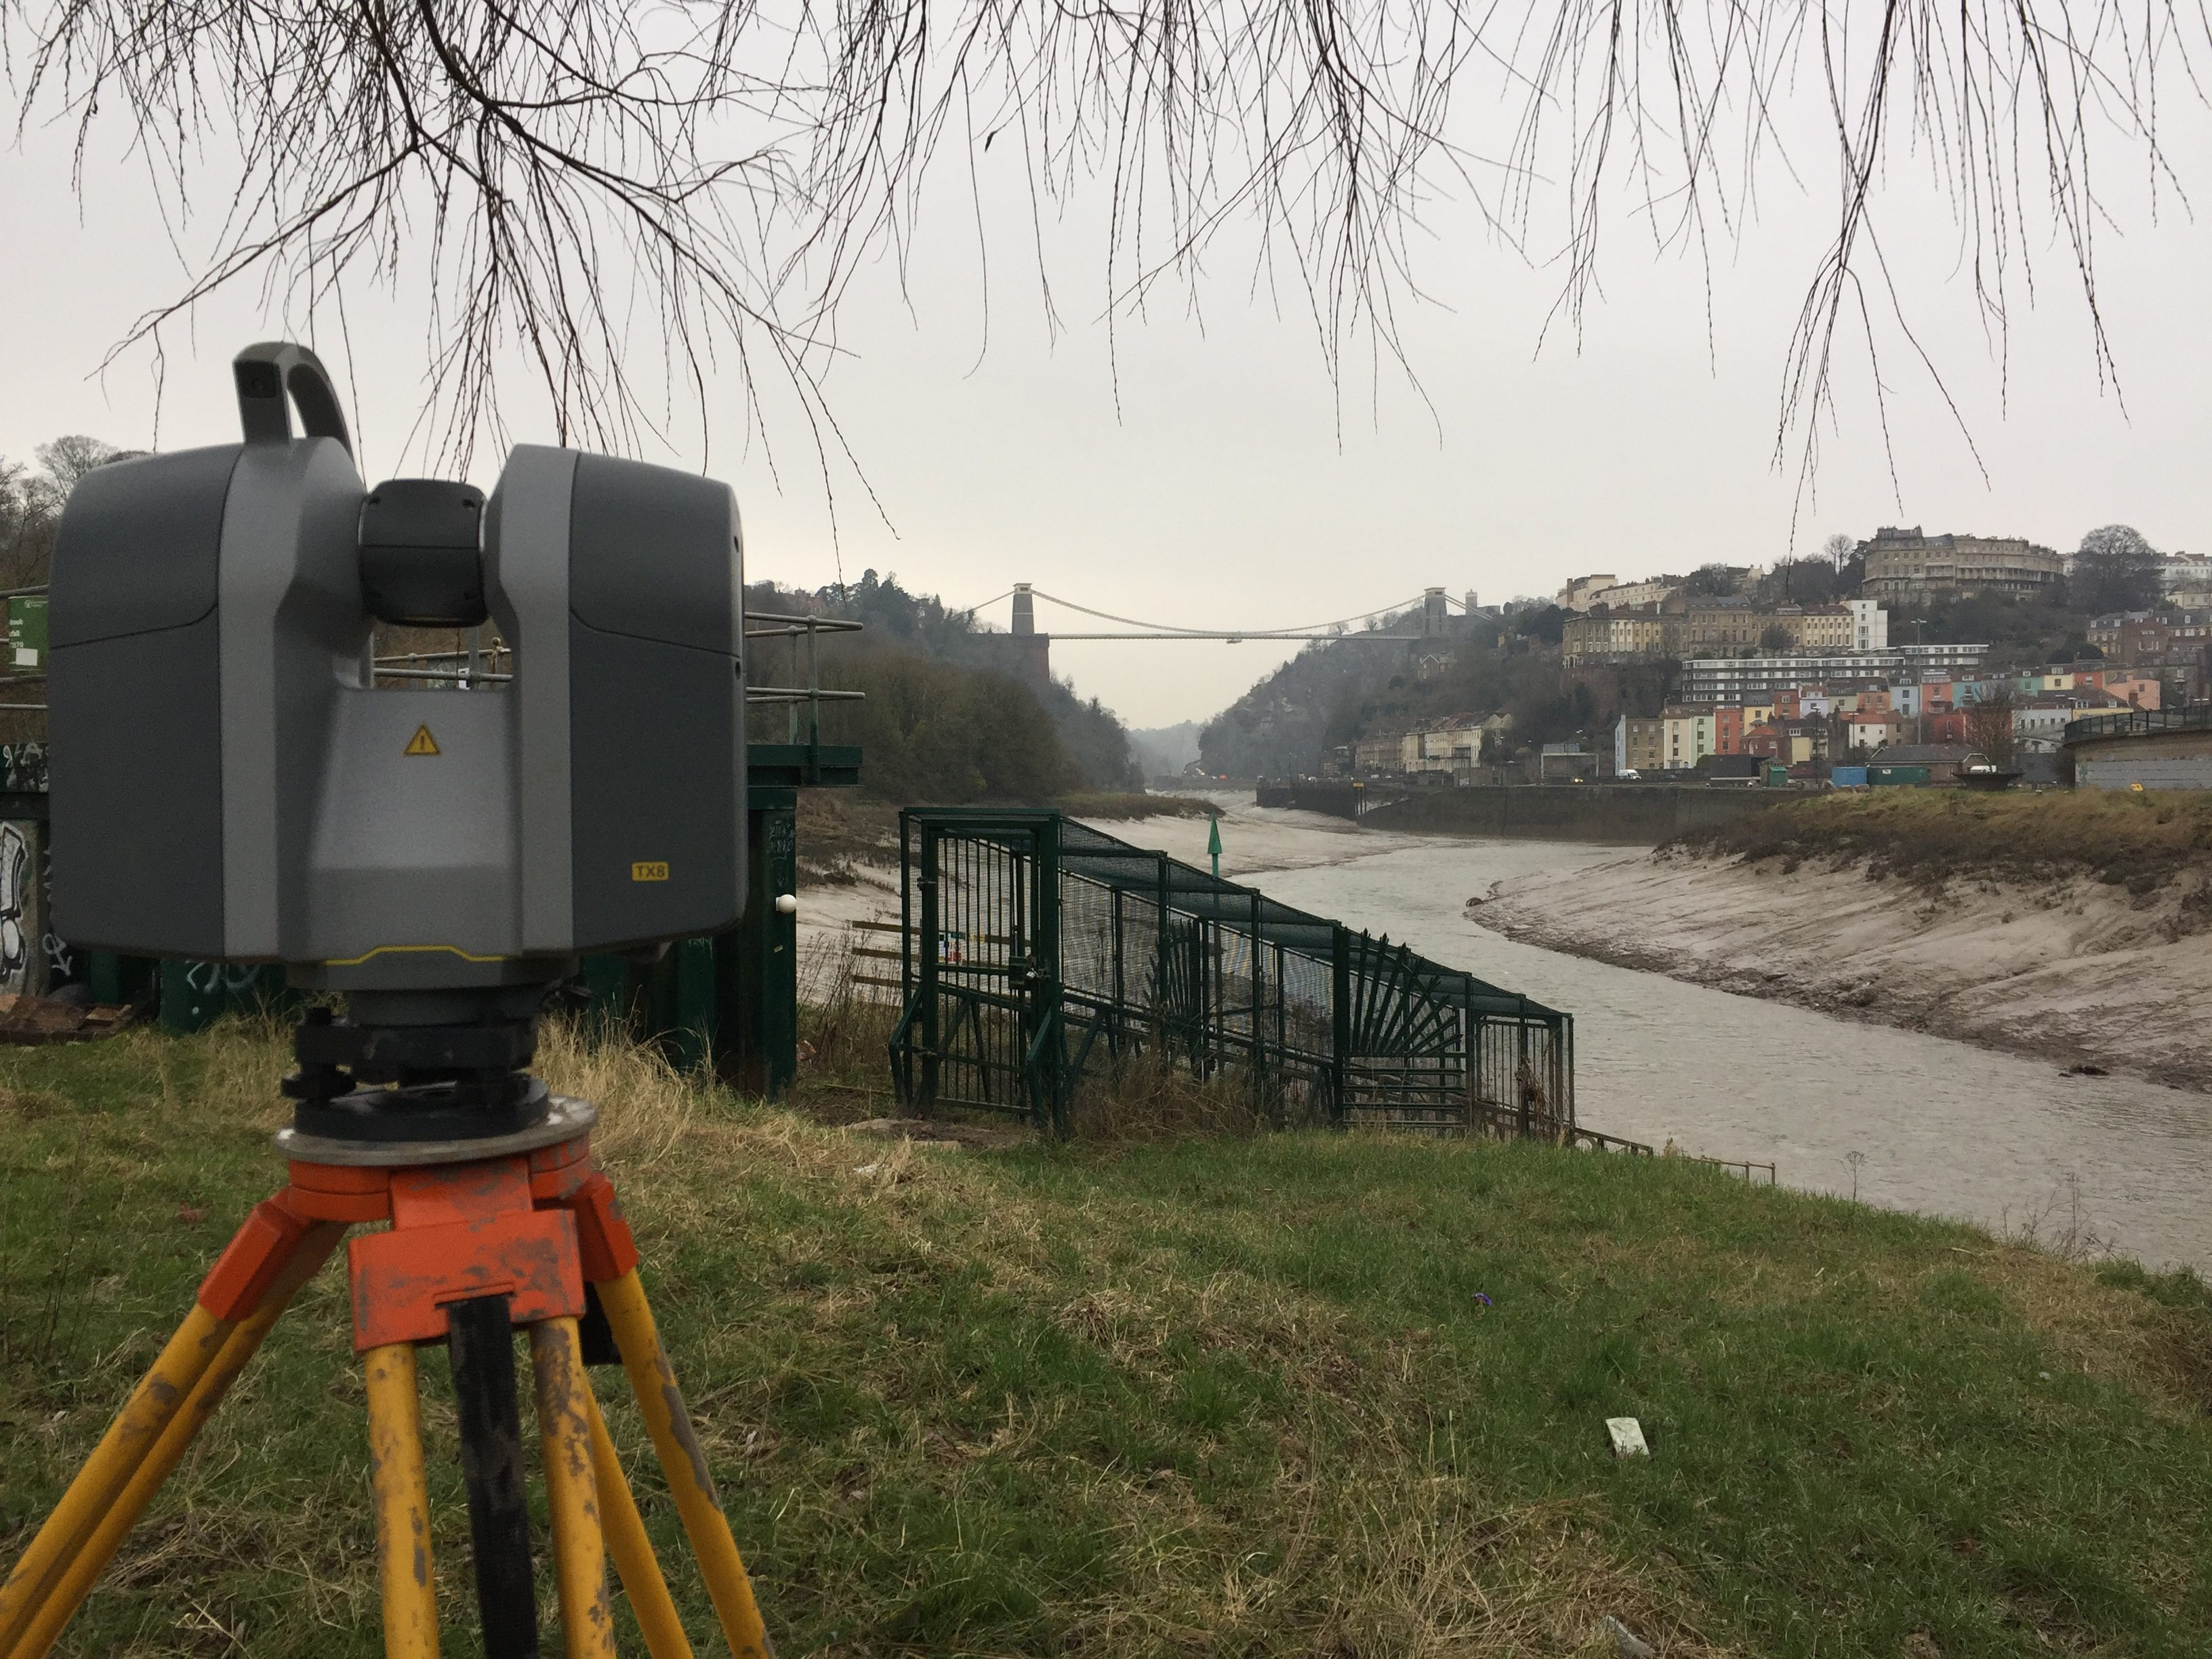 Laser Scanning Surveys | LiDAR Mapping - Glanville Geospatial Services